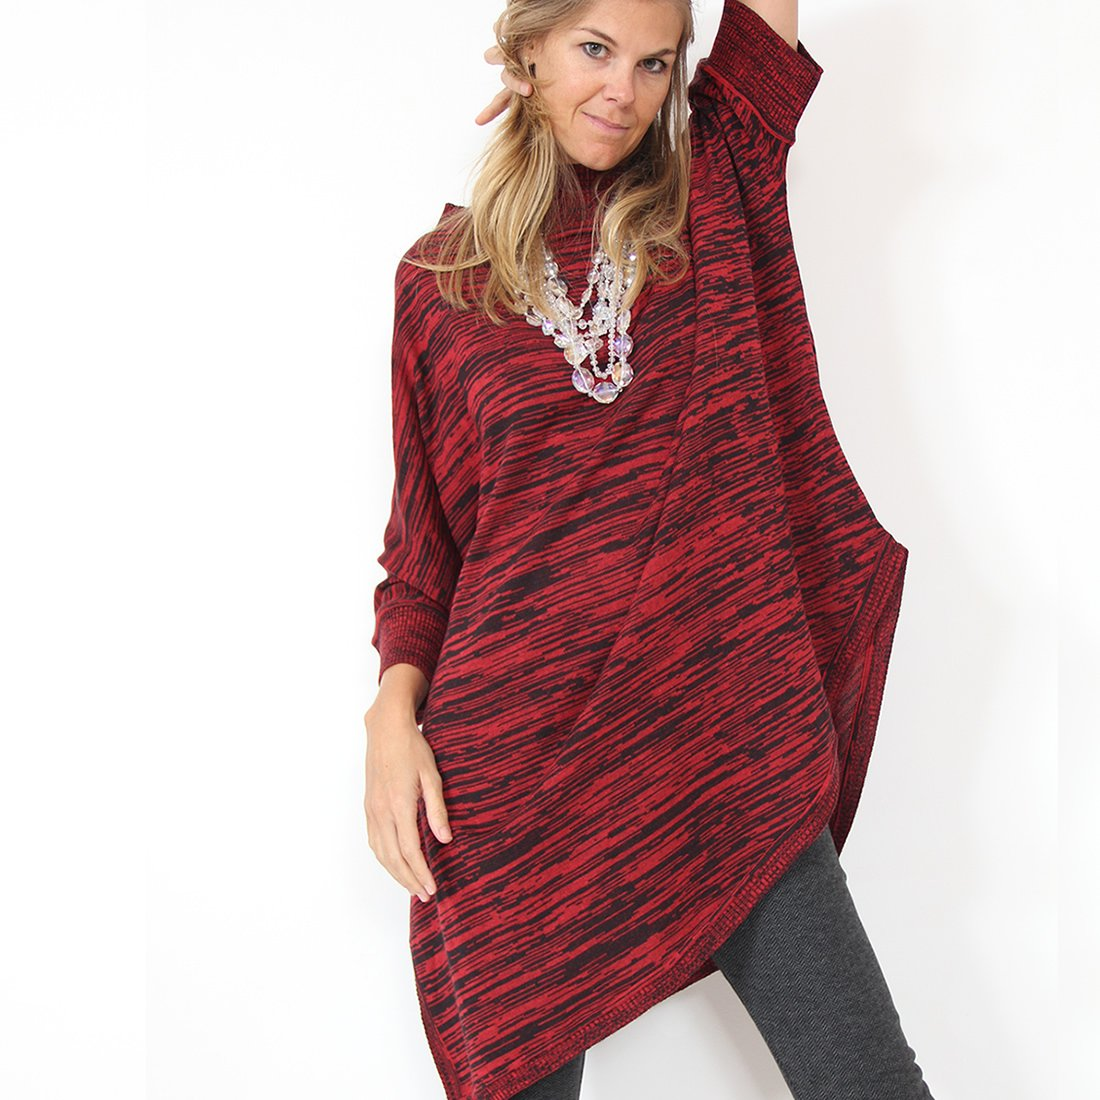 Murliyn Womens Knitted Asymmetric Pullover - Boat-Neck Oversize 3/4 Dolman Sleeves Knit Sweater - Casual, Loose Fit - OS - Ruby Red